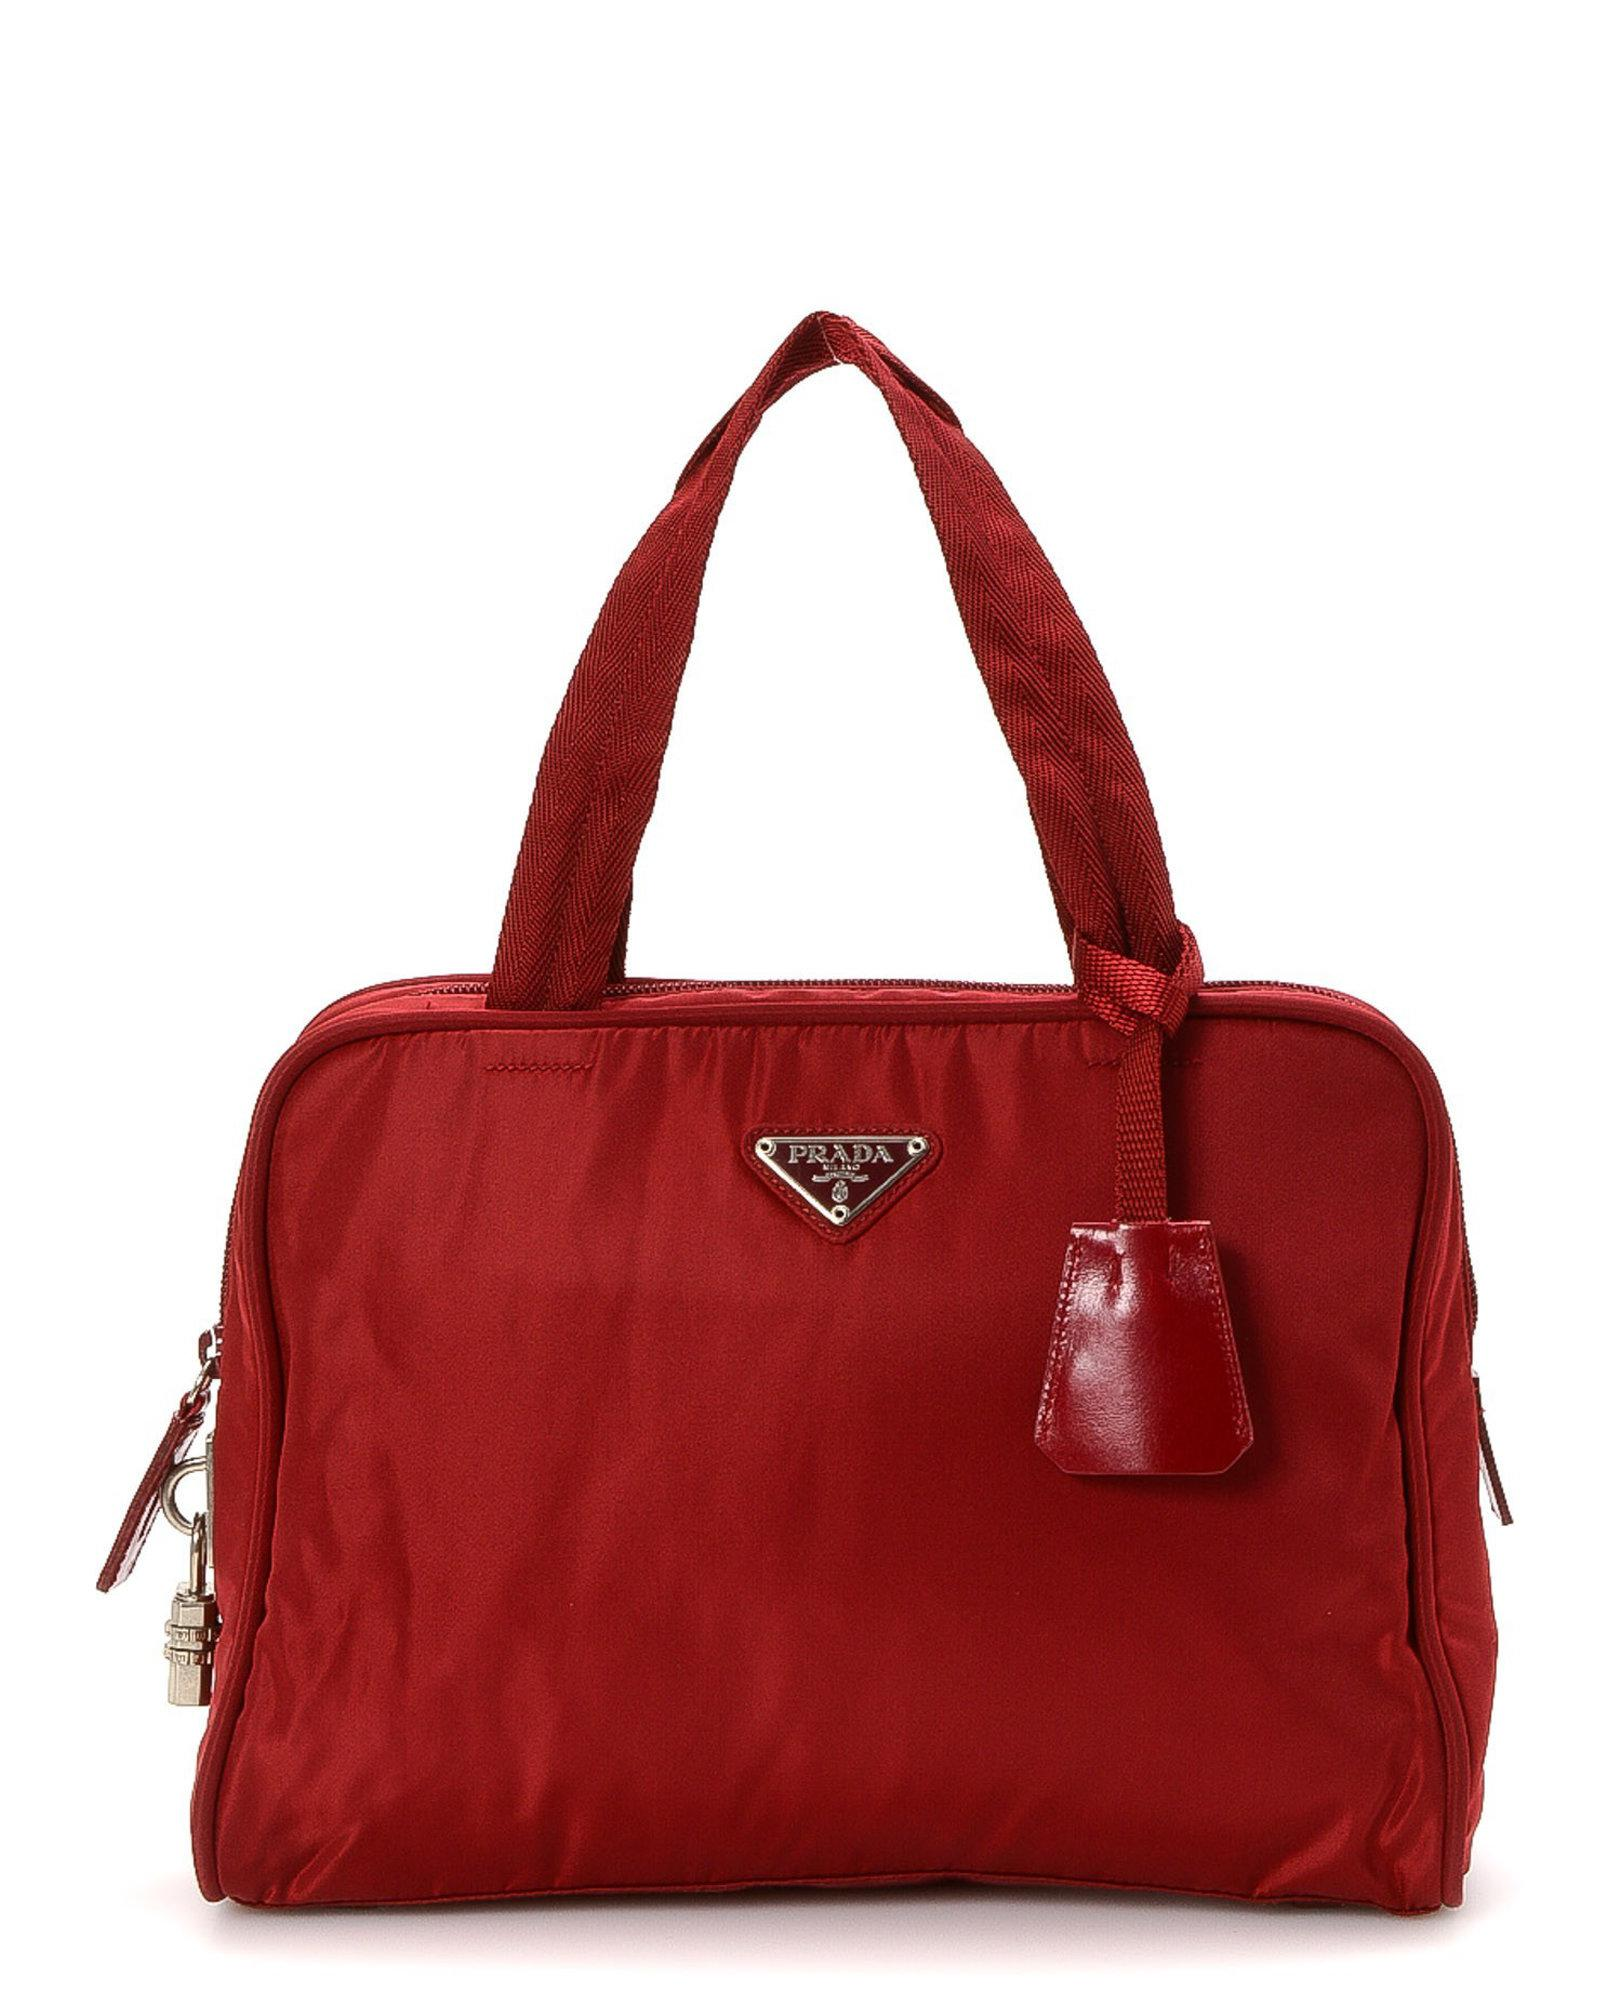 1614f76e3fe ... denmark lyst prada shoulder bag vintage in red 0678b 341c7